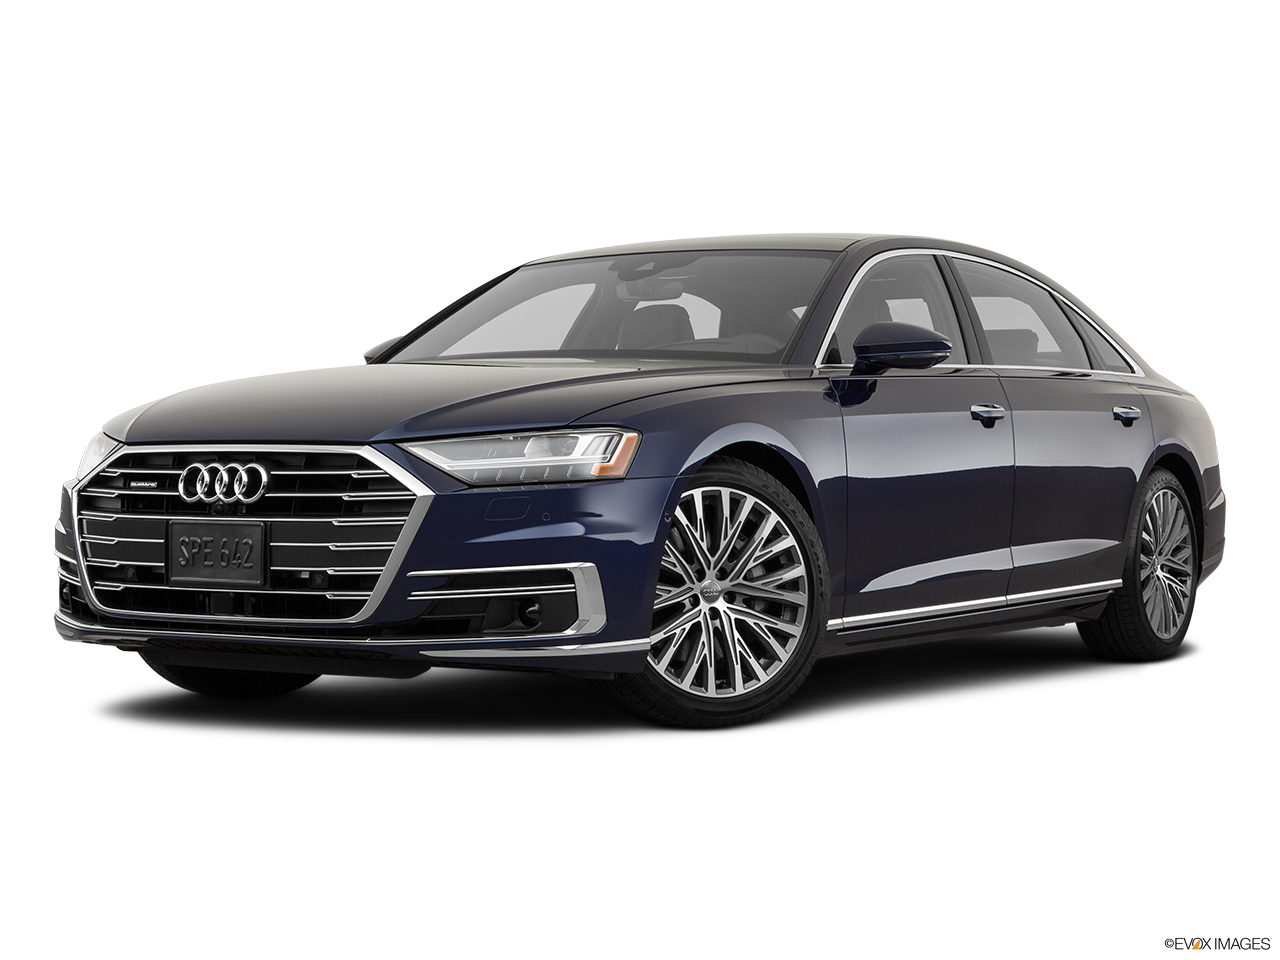 Three quart view of the Audi A8 L